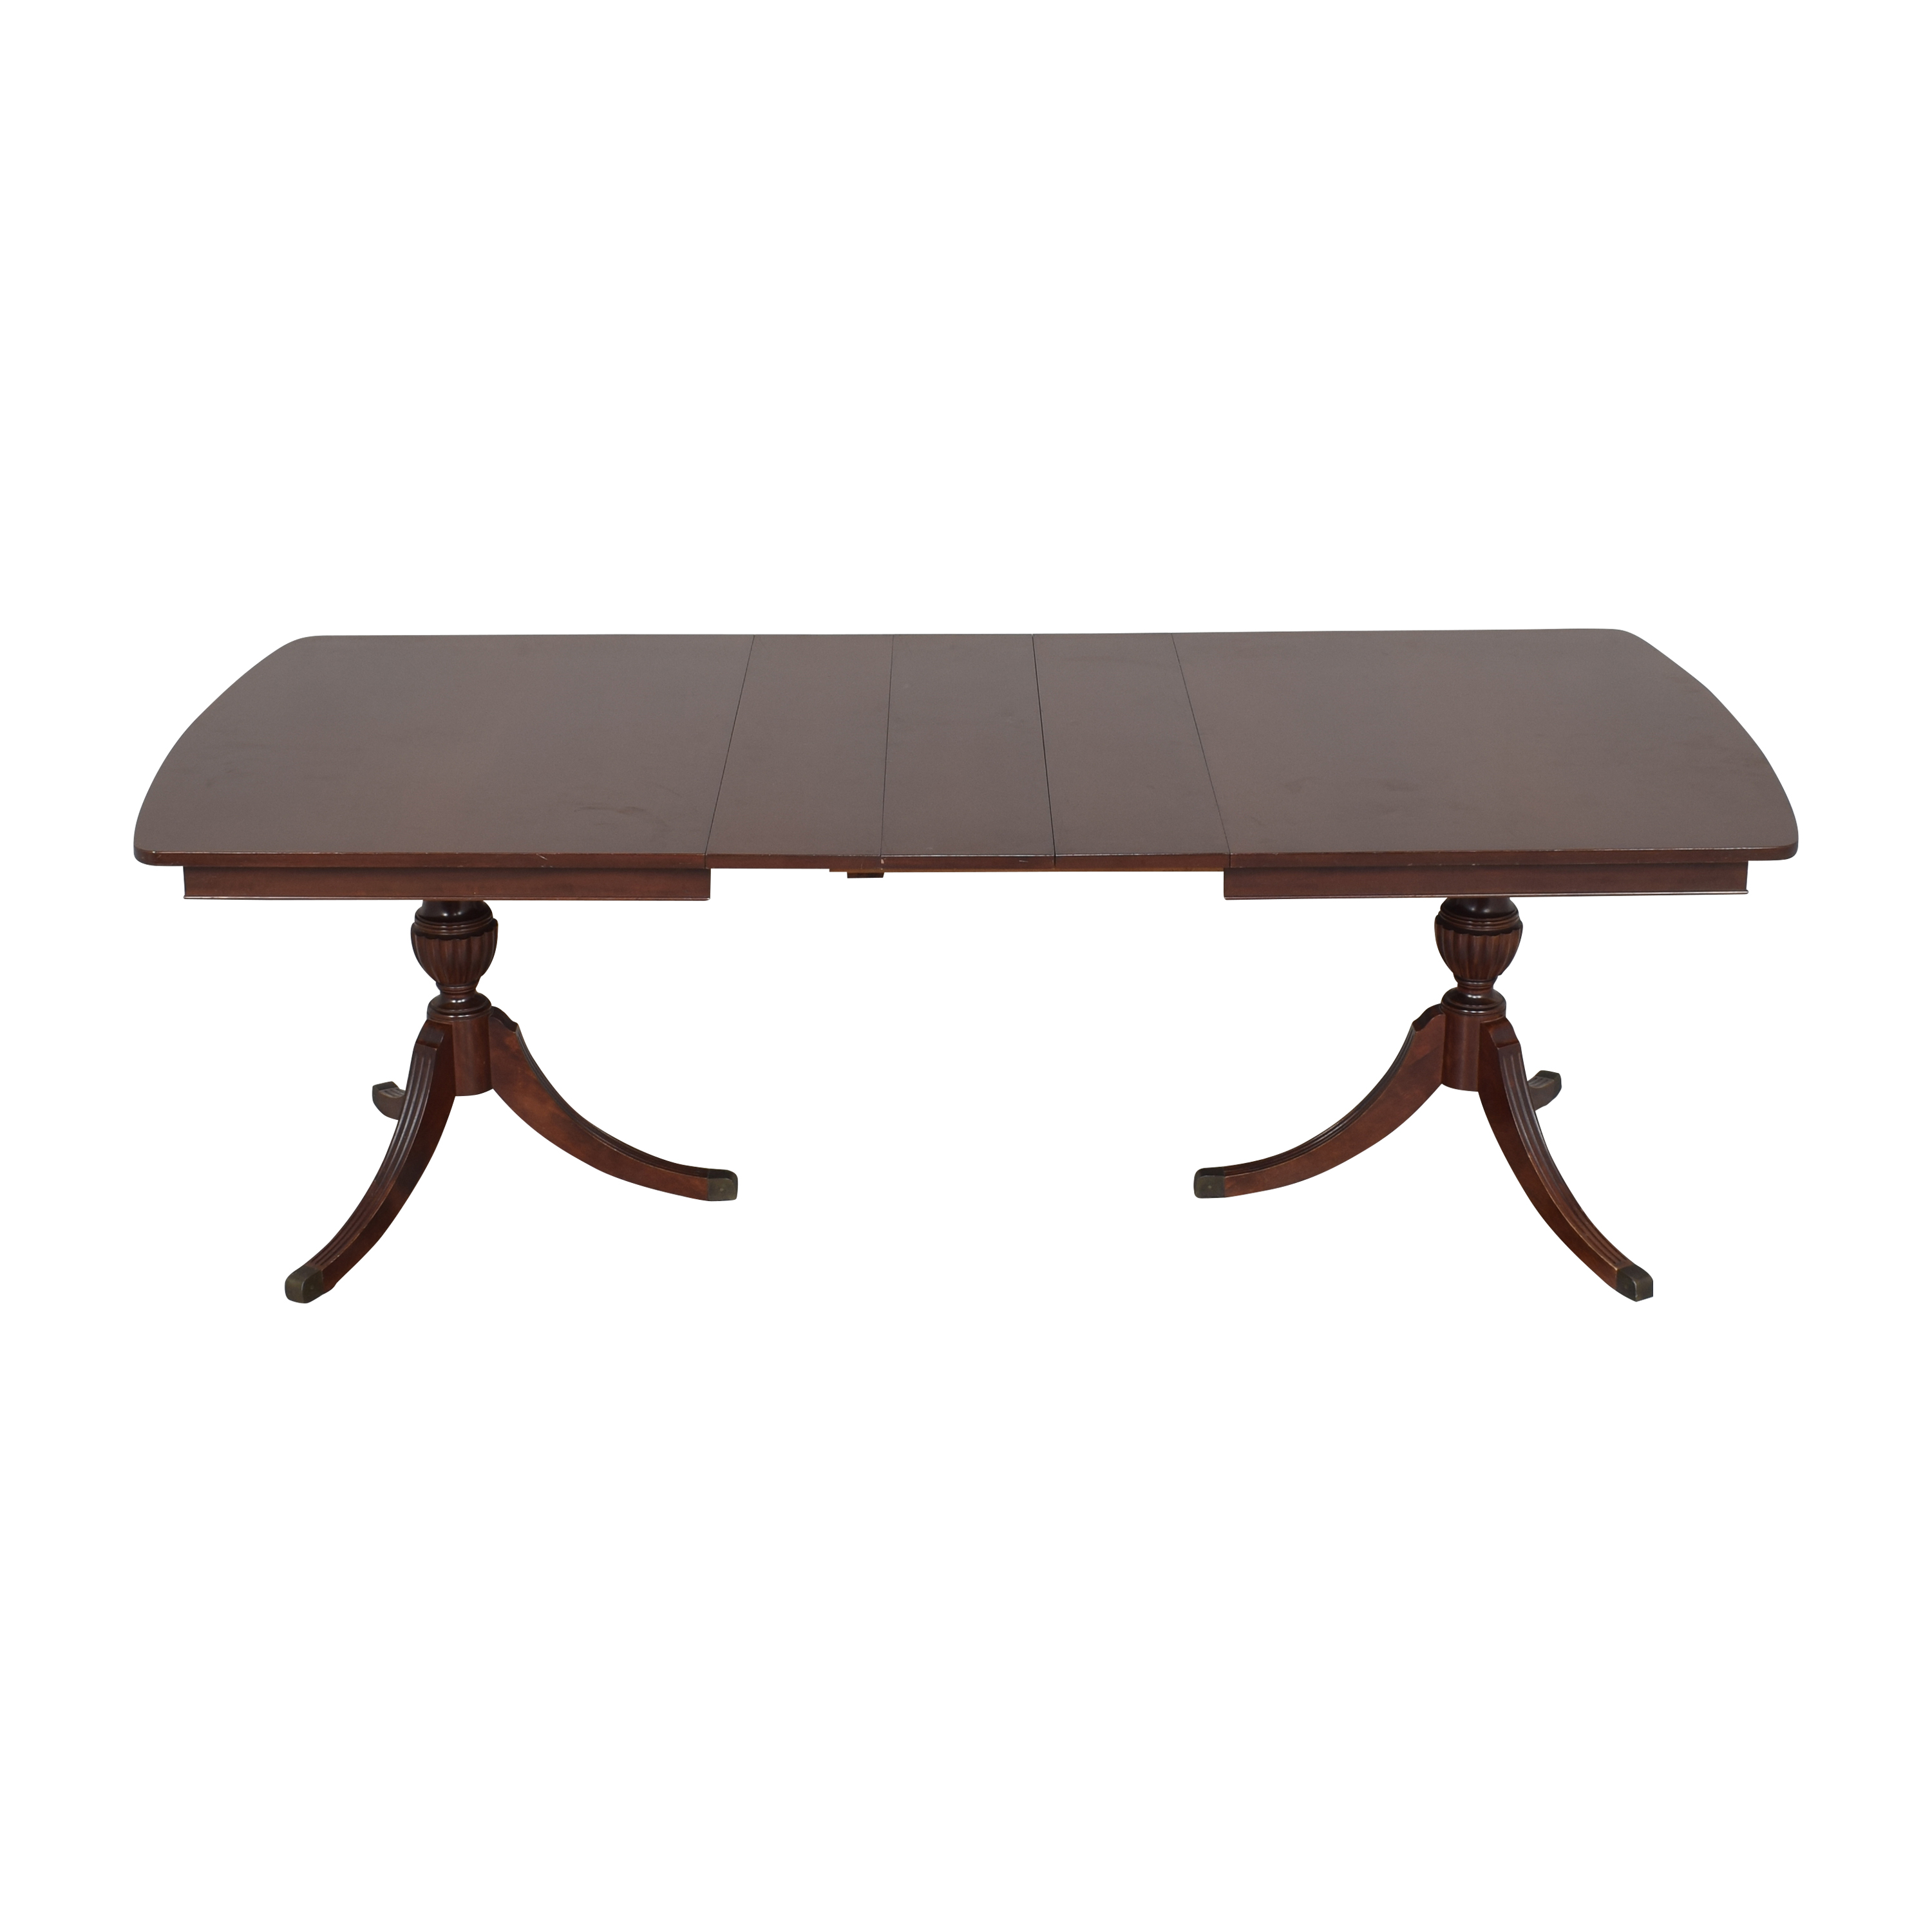 shop RWAY RWAY Double Pedestal Dining Table online